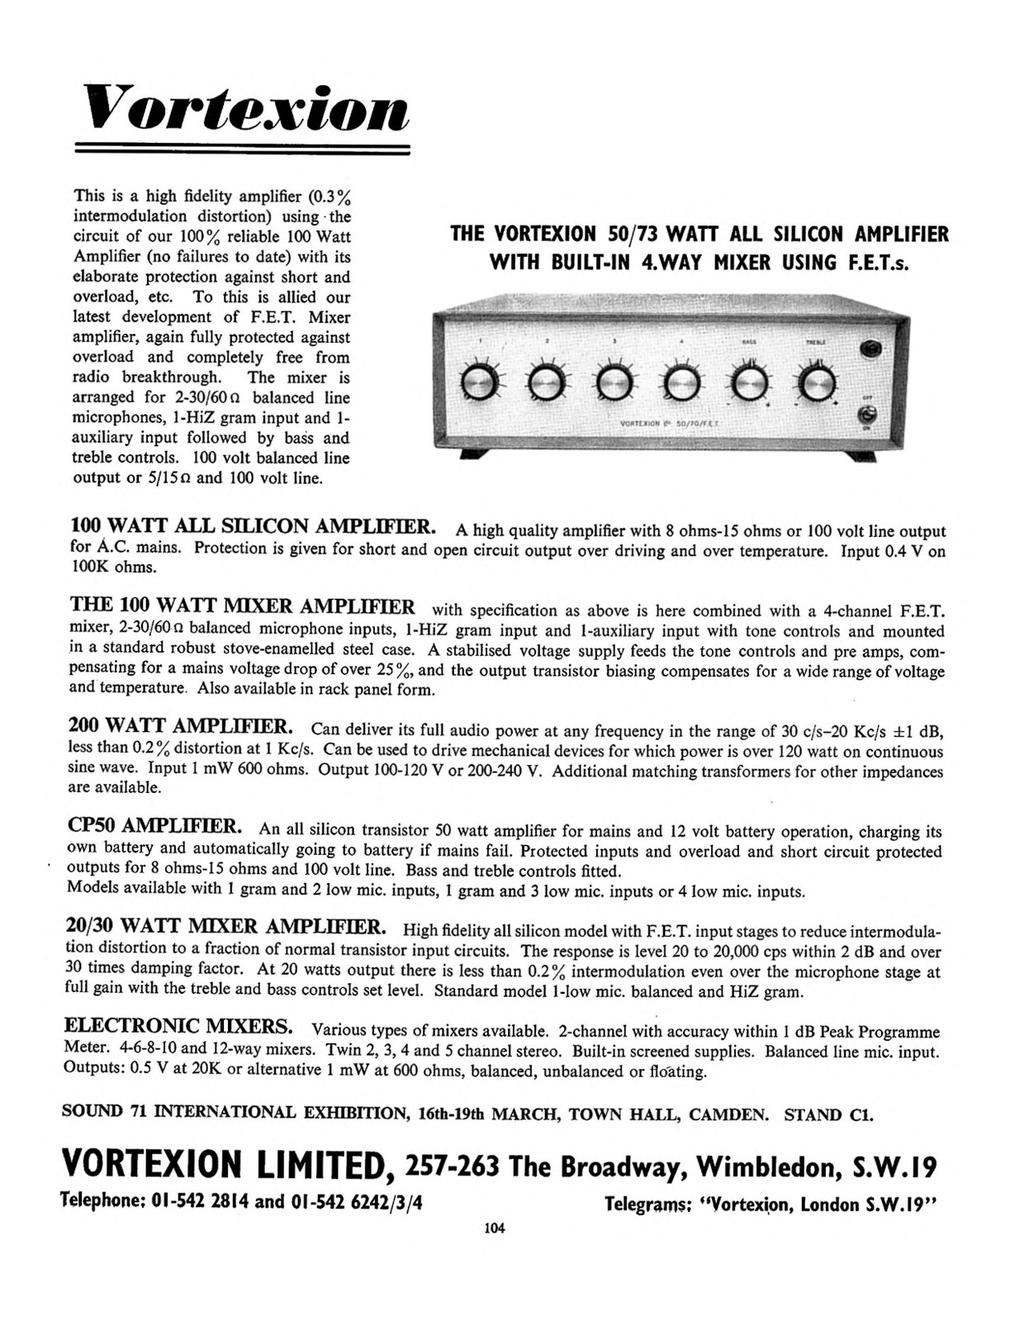 Why Coincident Microphones Inside Gemini High Quality Mixer Li Reversing A Motor4 See 1 2 3 In 200 Transistor Circuits Vortexion This Is Fidelity Amplifier 0